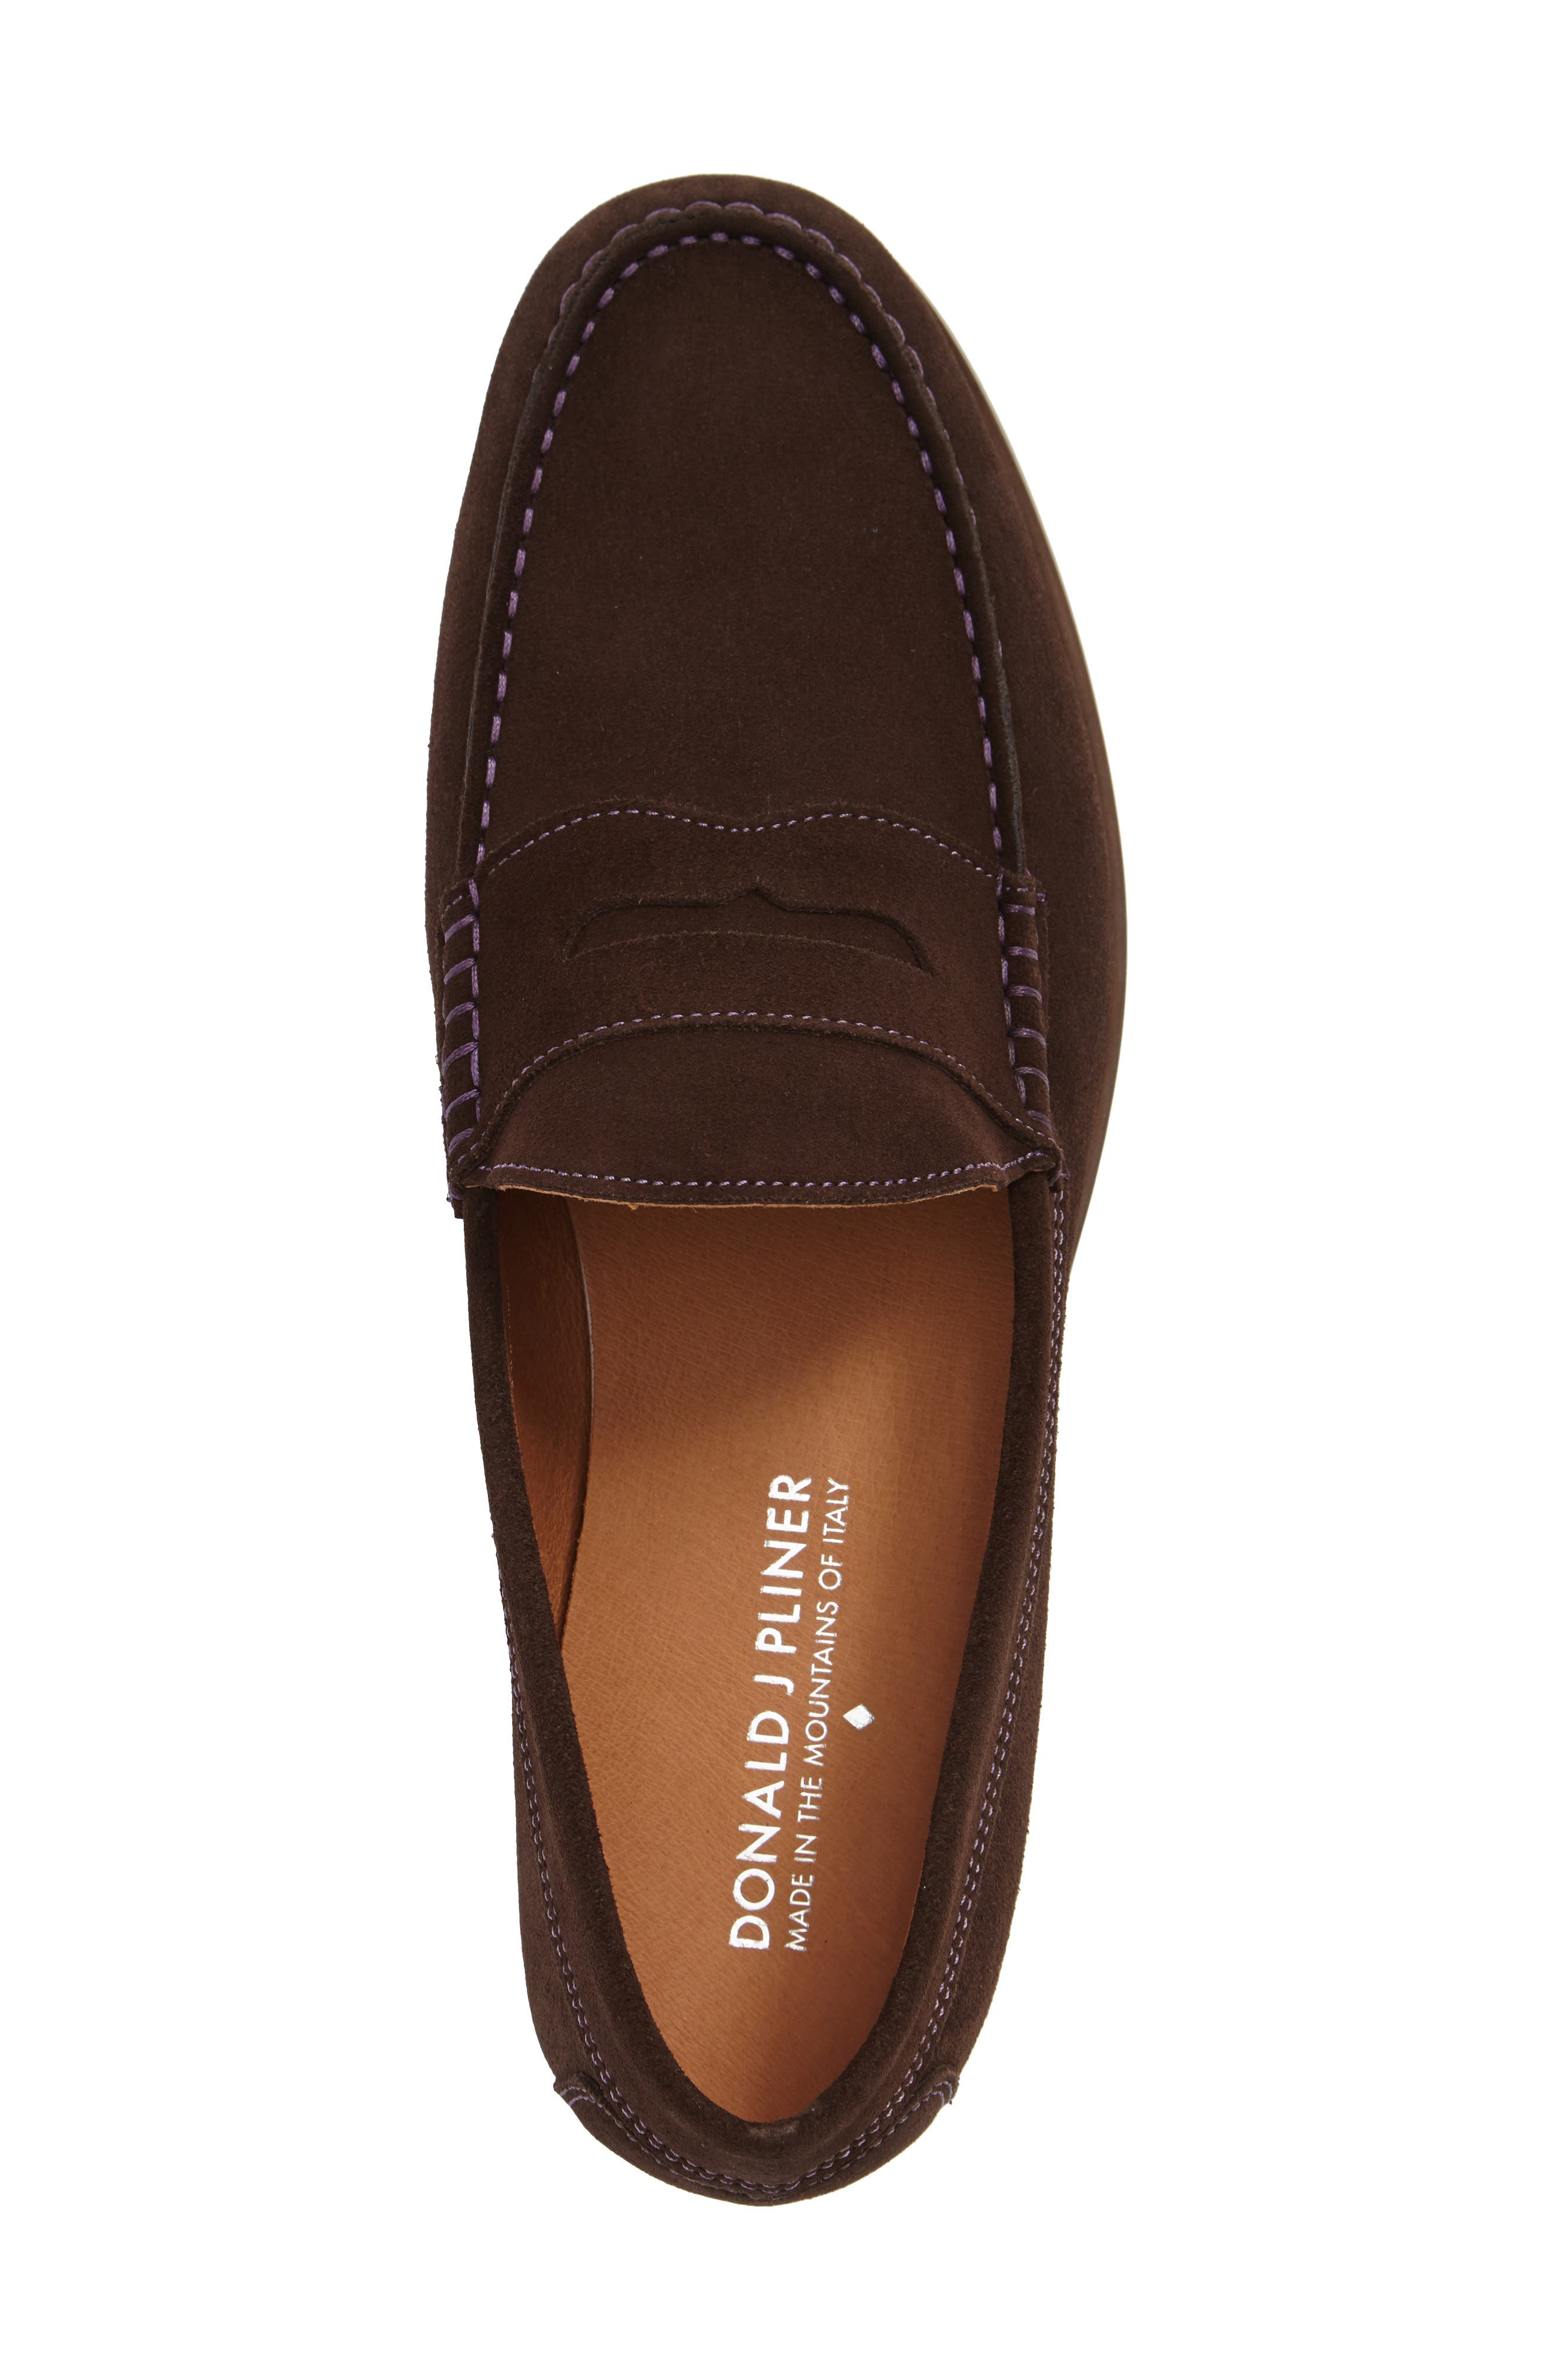 Nicola Penny Loafer,                             Alternate thumbnail 25, color,